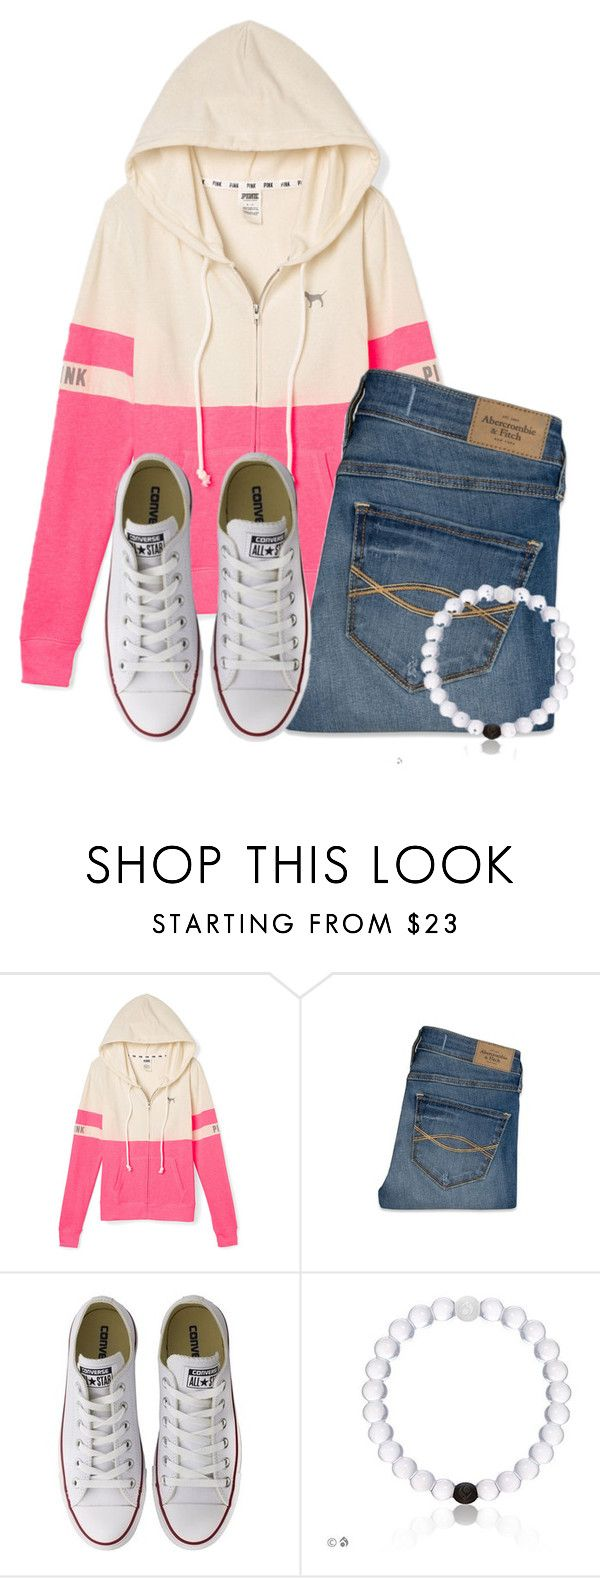 """""""Wednesday"""" by flroasburn ❤ liked on Polyvore featuring Abercrombie & Fitch and Converse"""